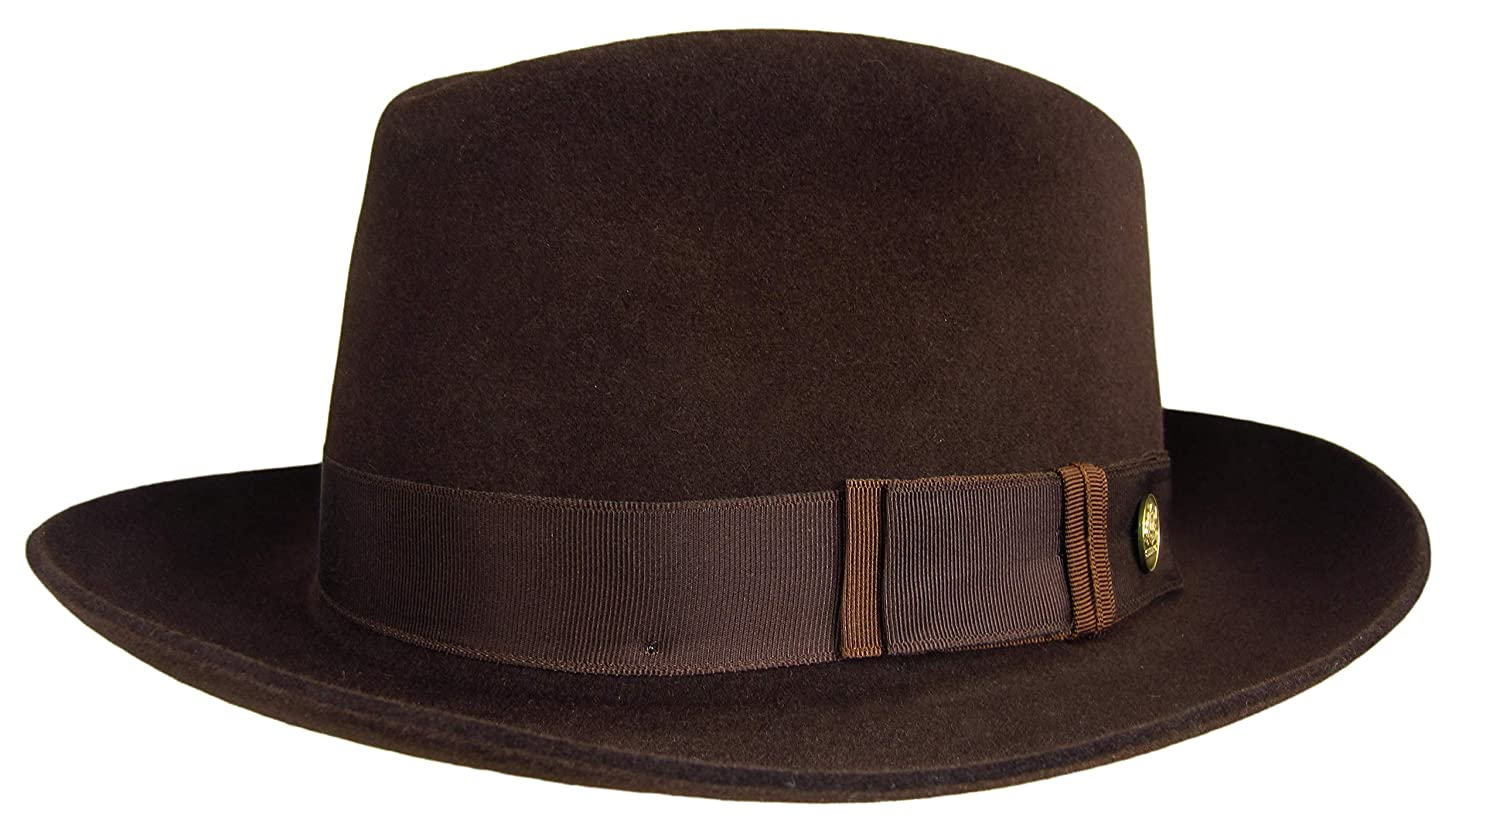 Stetson Lowell Fedora Chocolate Brown Size 7 1 4 R Oval 2 1 8